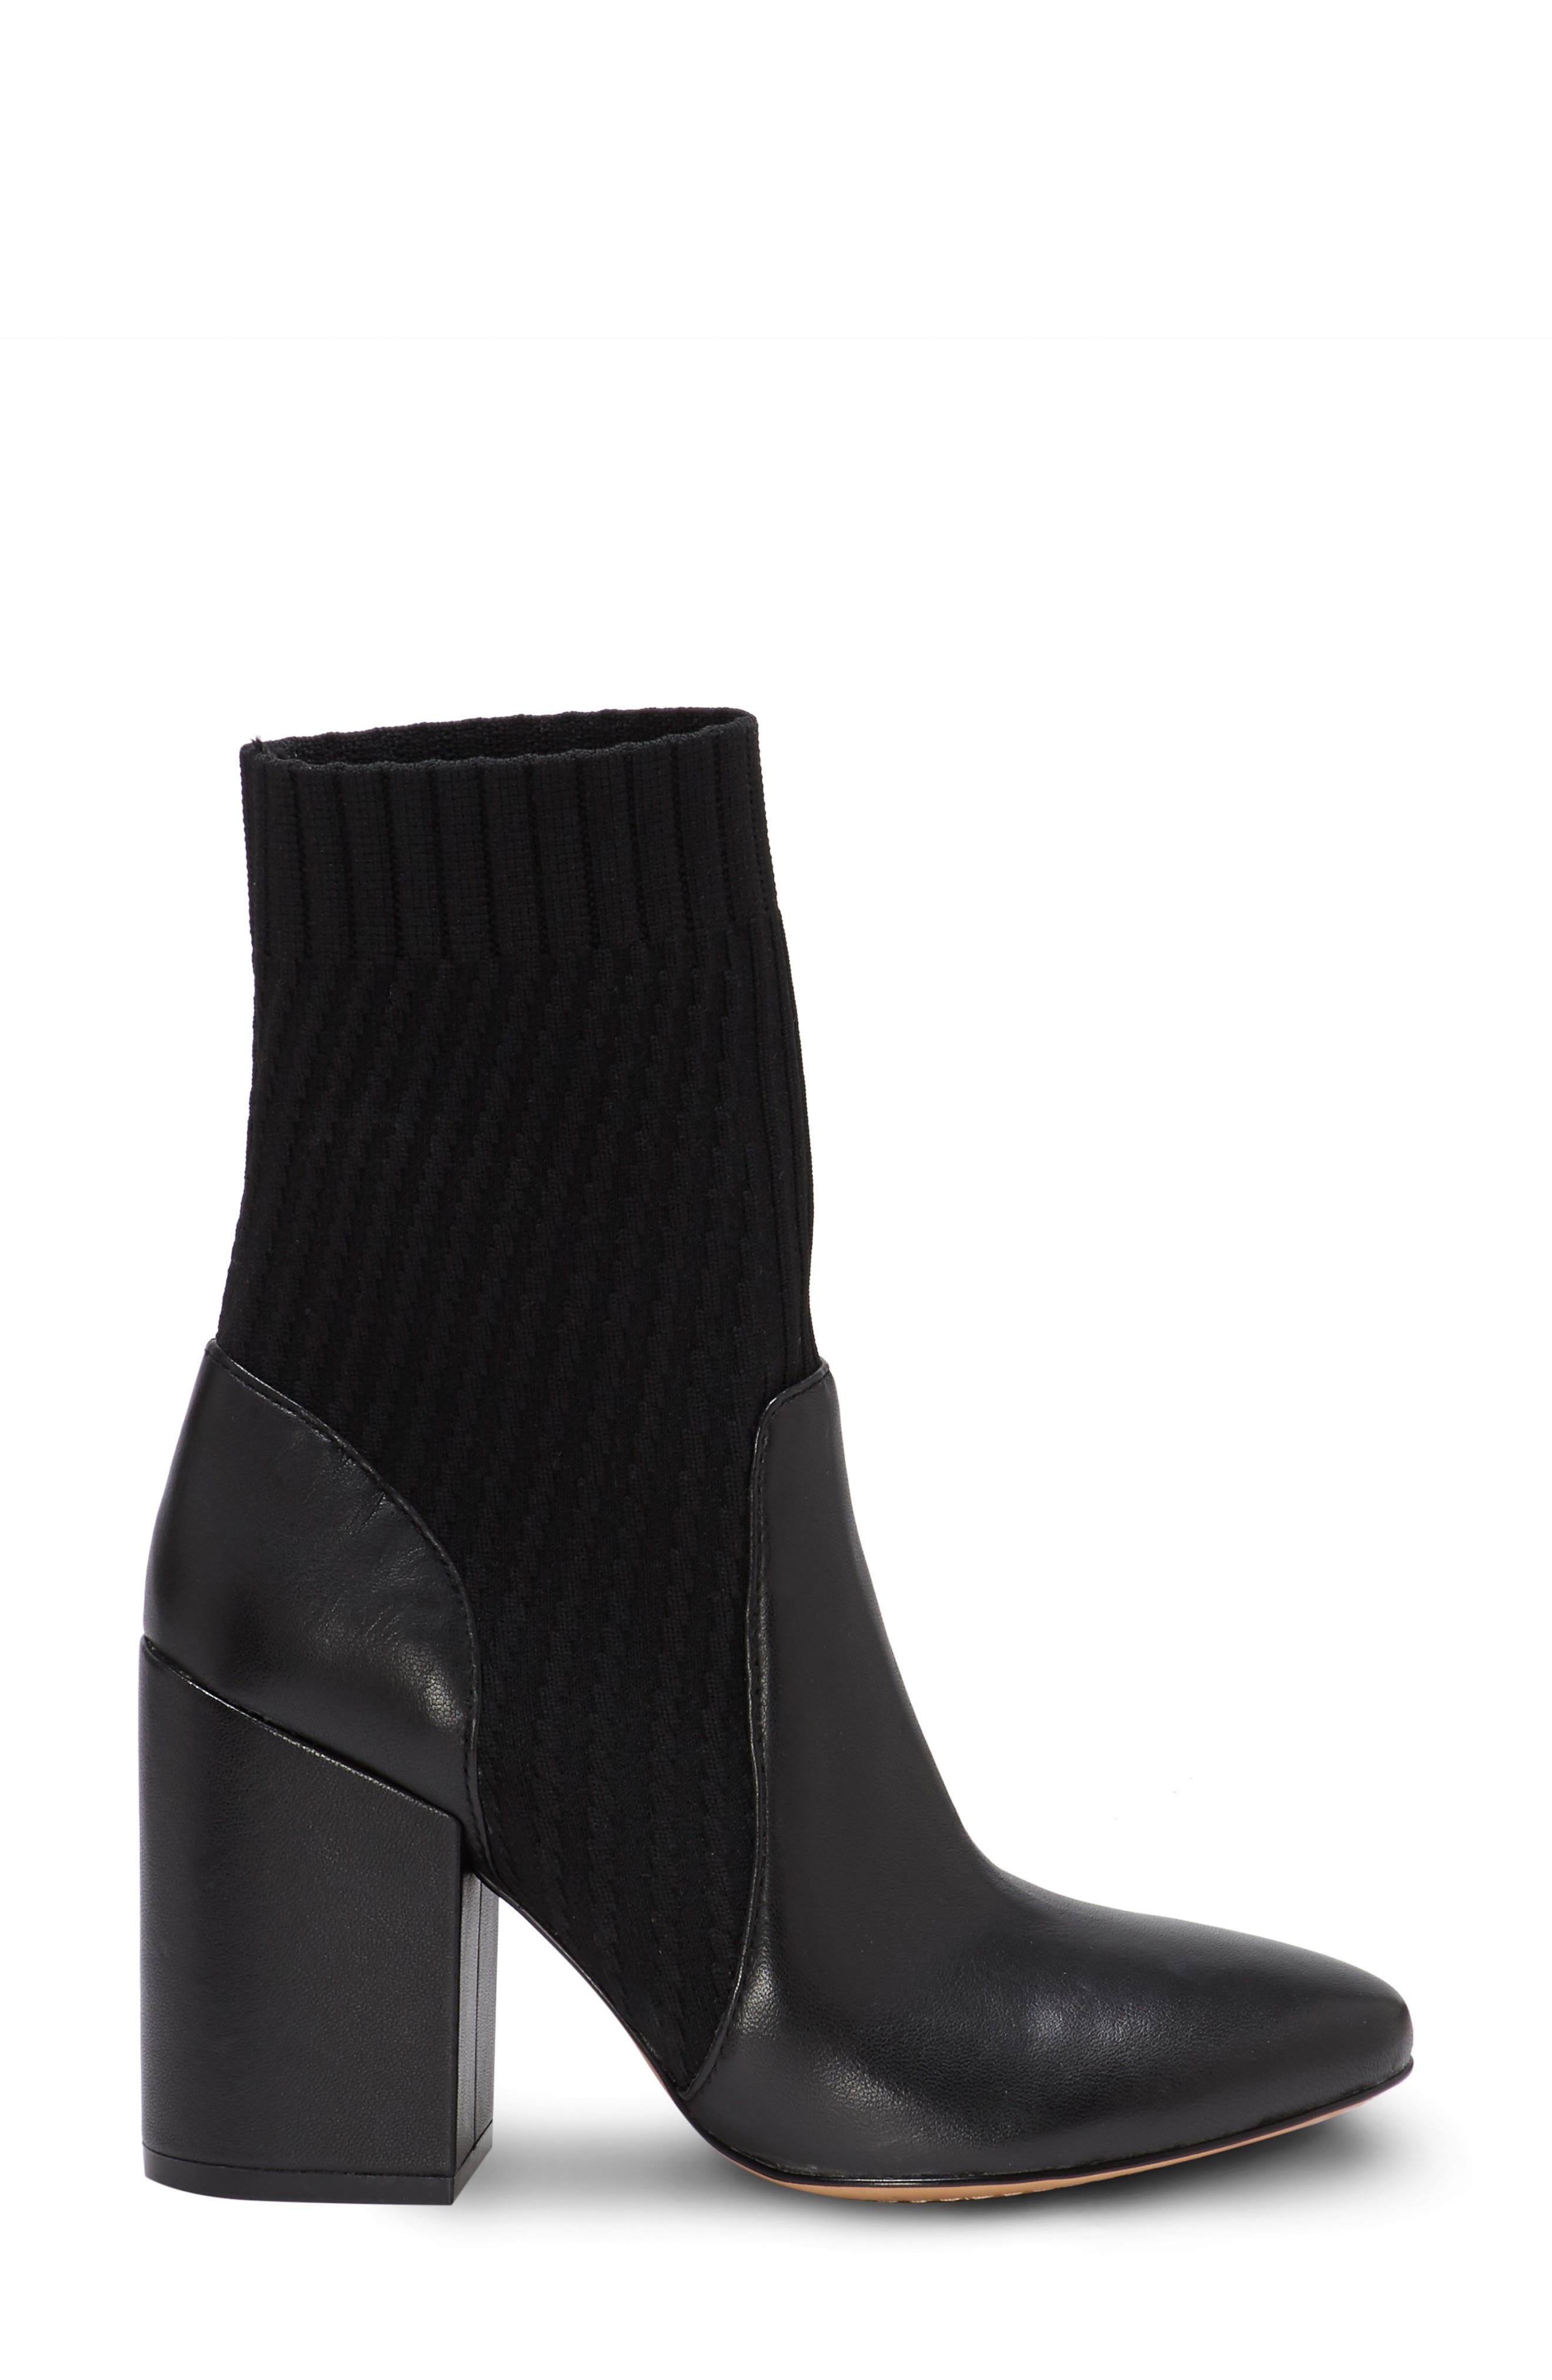 VINCE CAMUTO, Diandra Boot, Alternate thumbnail 3, color, BLACK LEATHER